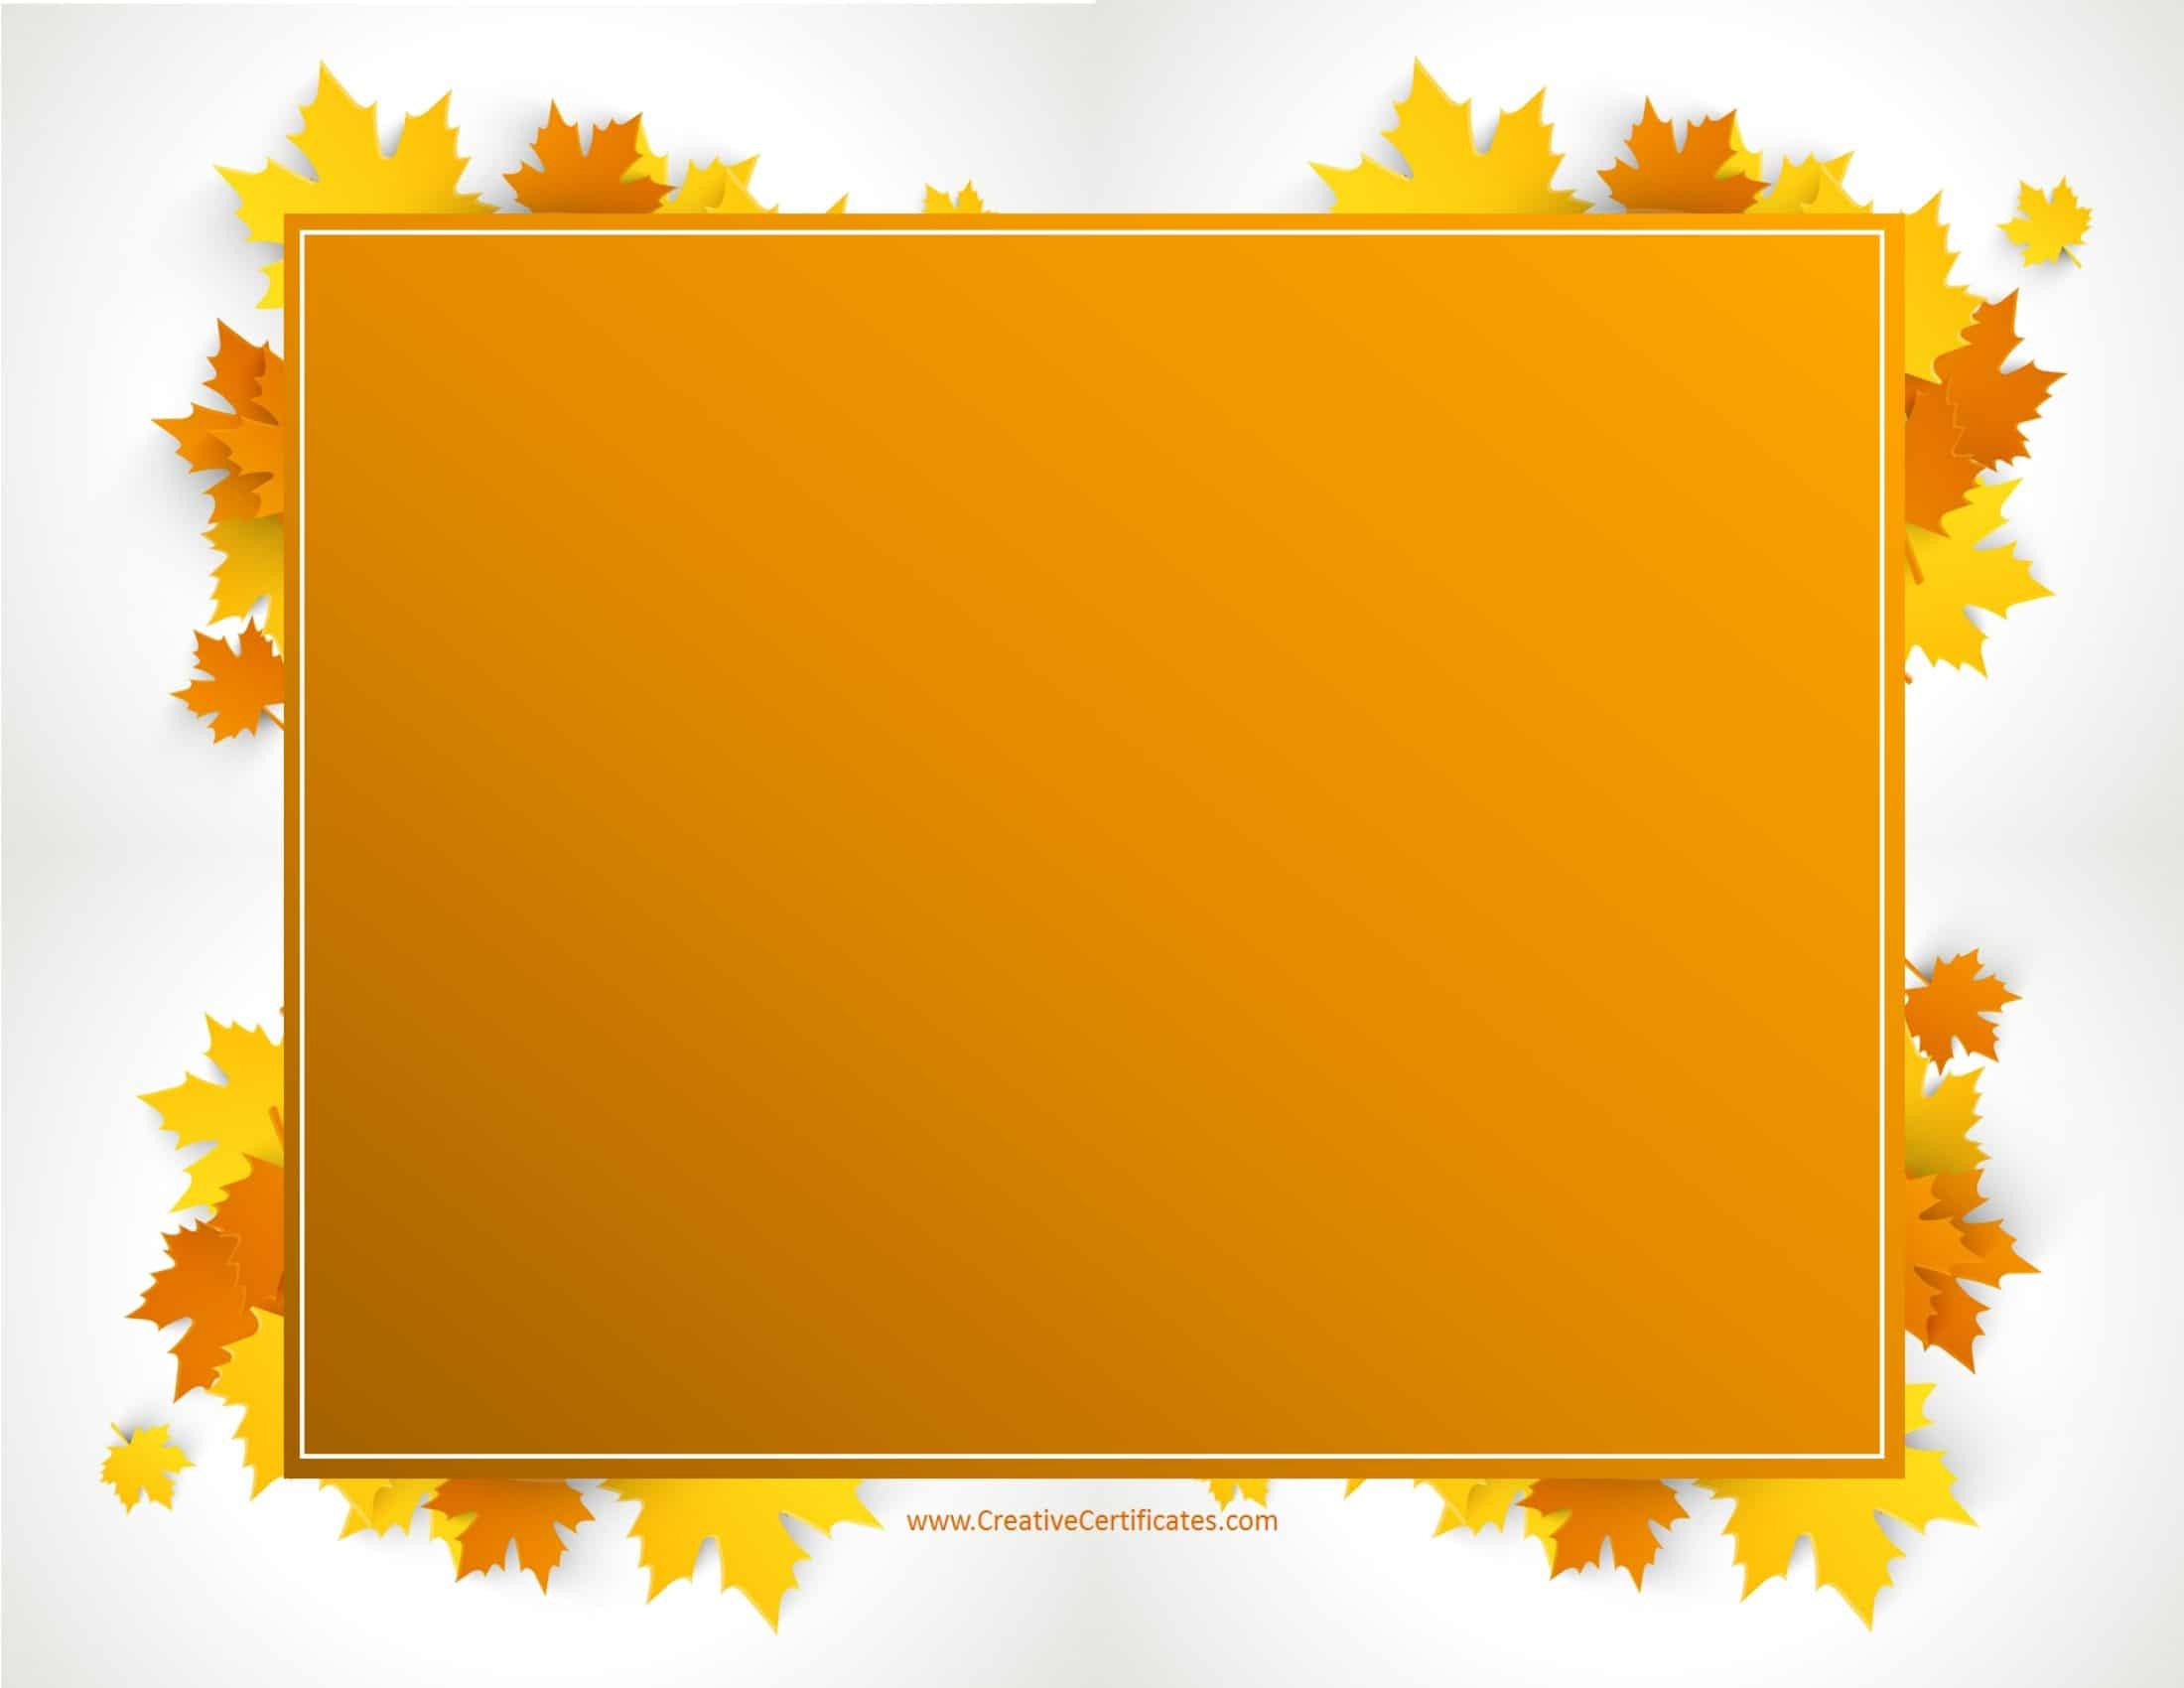 graphic relating to Free Printable Thanksgiving Borders named No cost Thanksgiving Border Templates - Customizable Printable